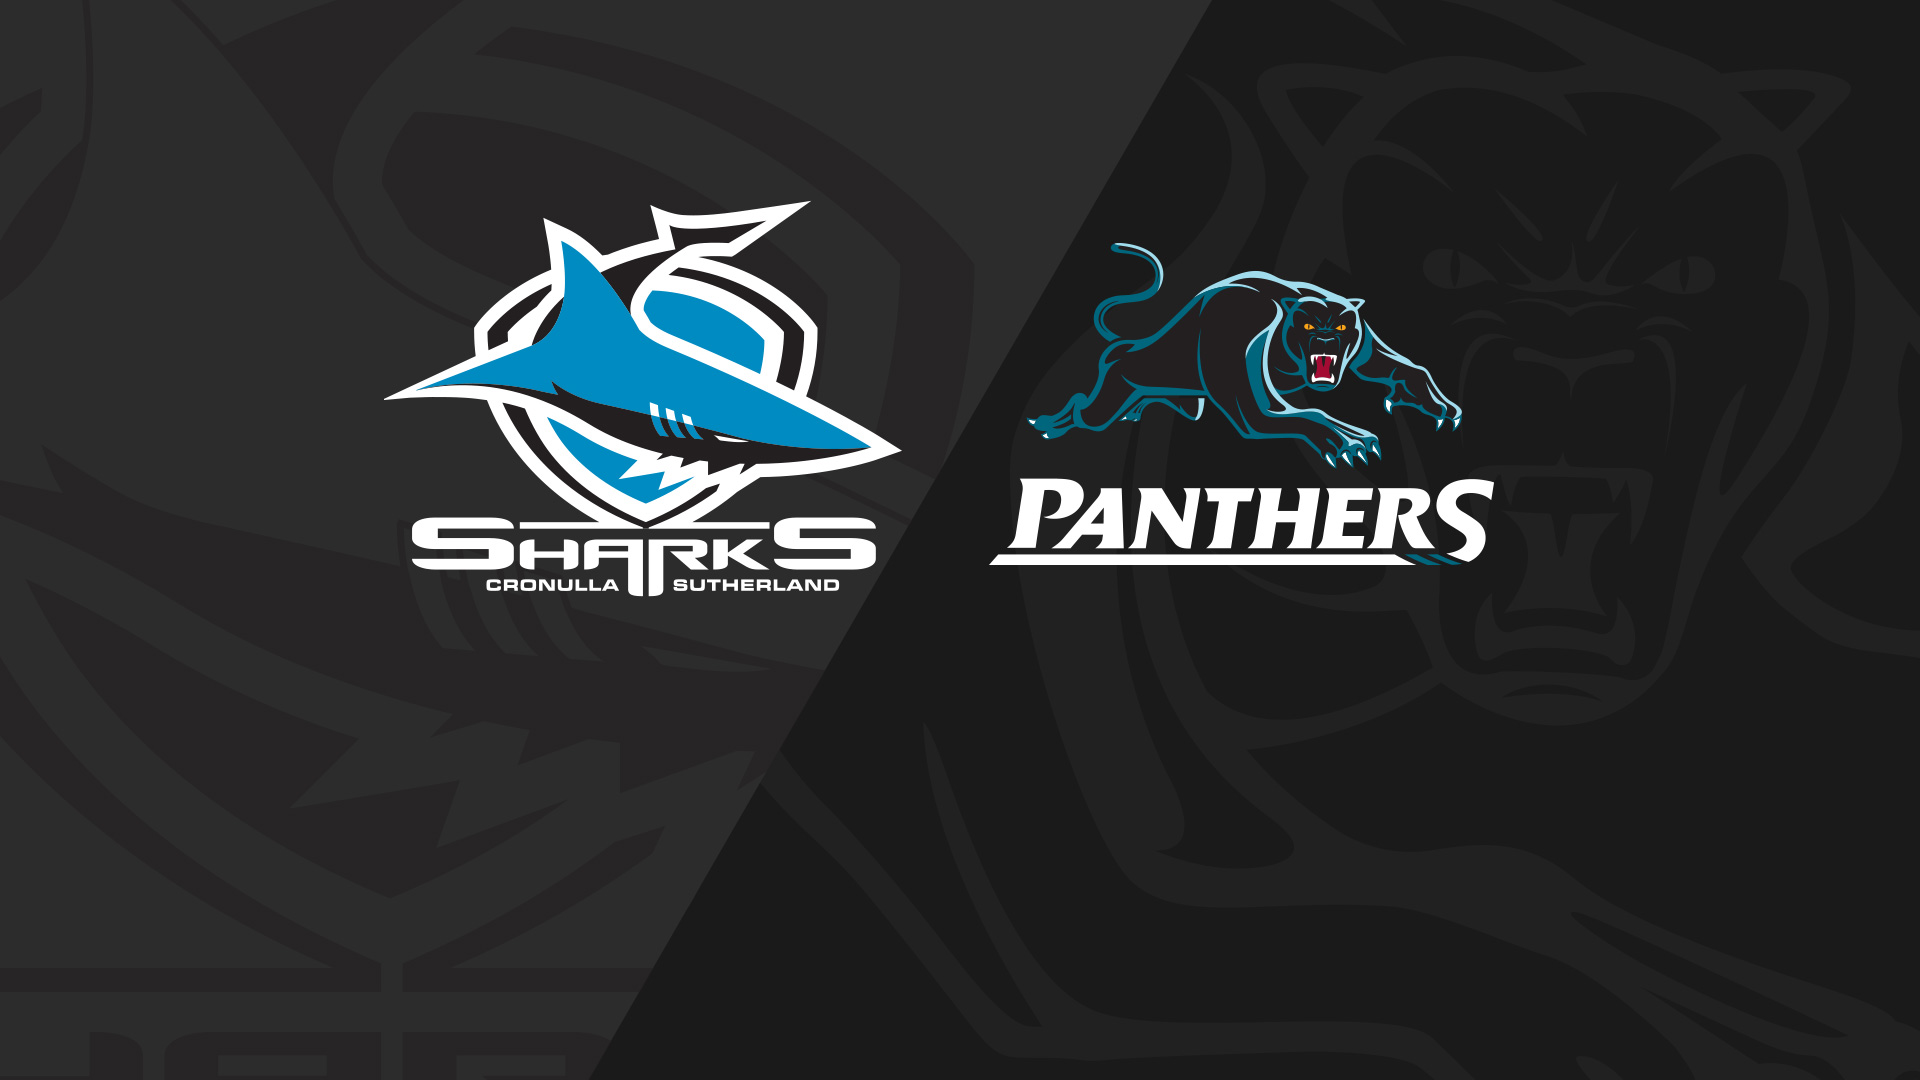 Full Match Replay: Sharks v Panthers - Finals Week 2, 2018